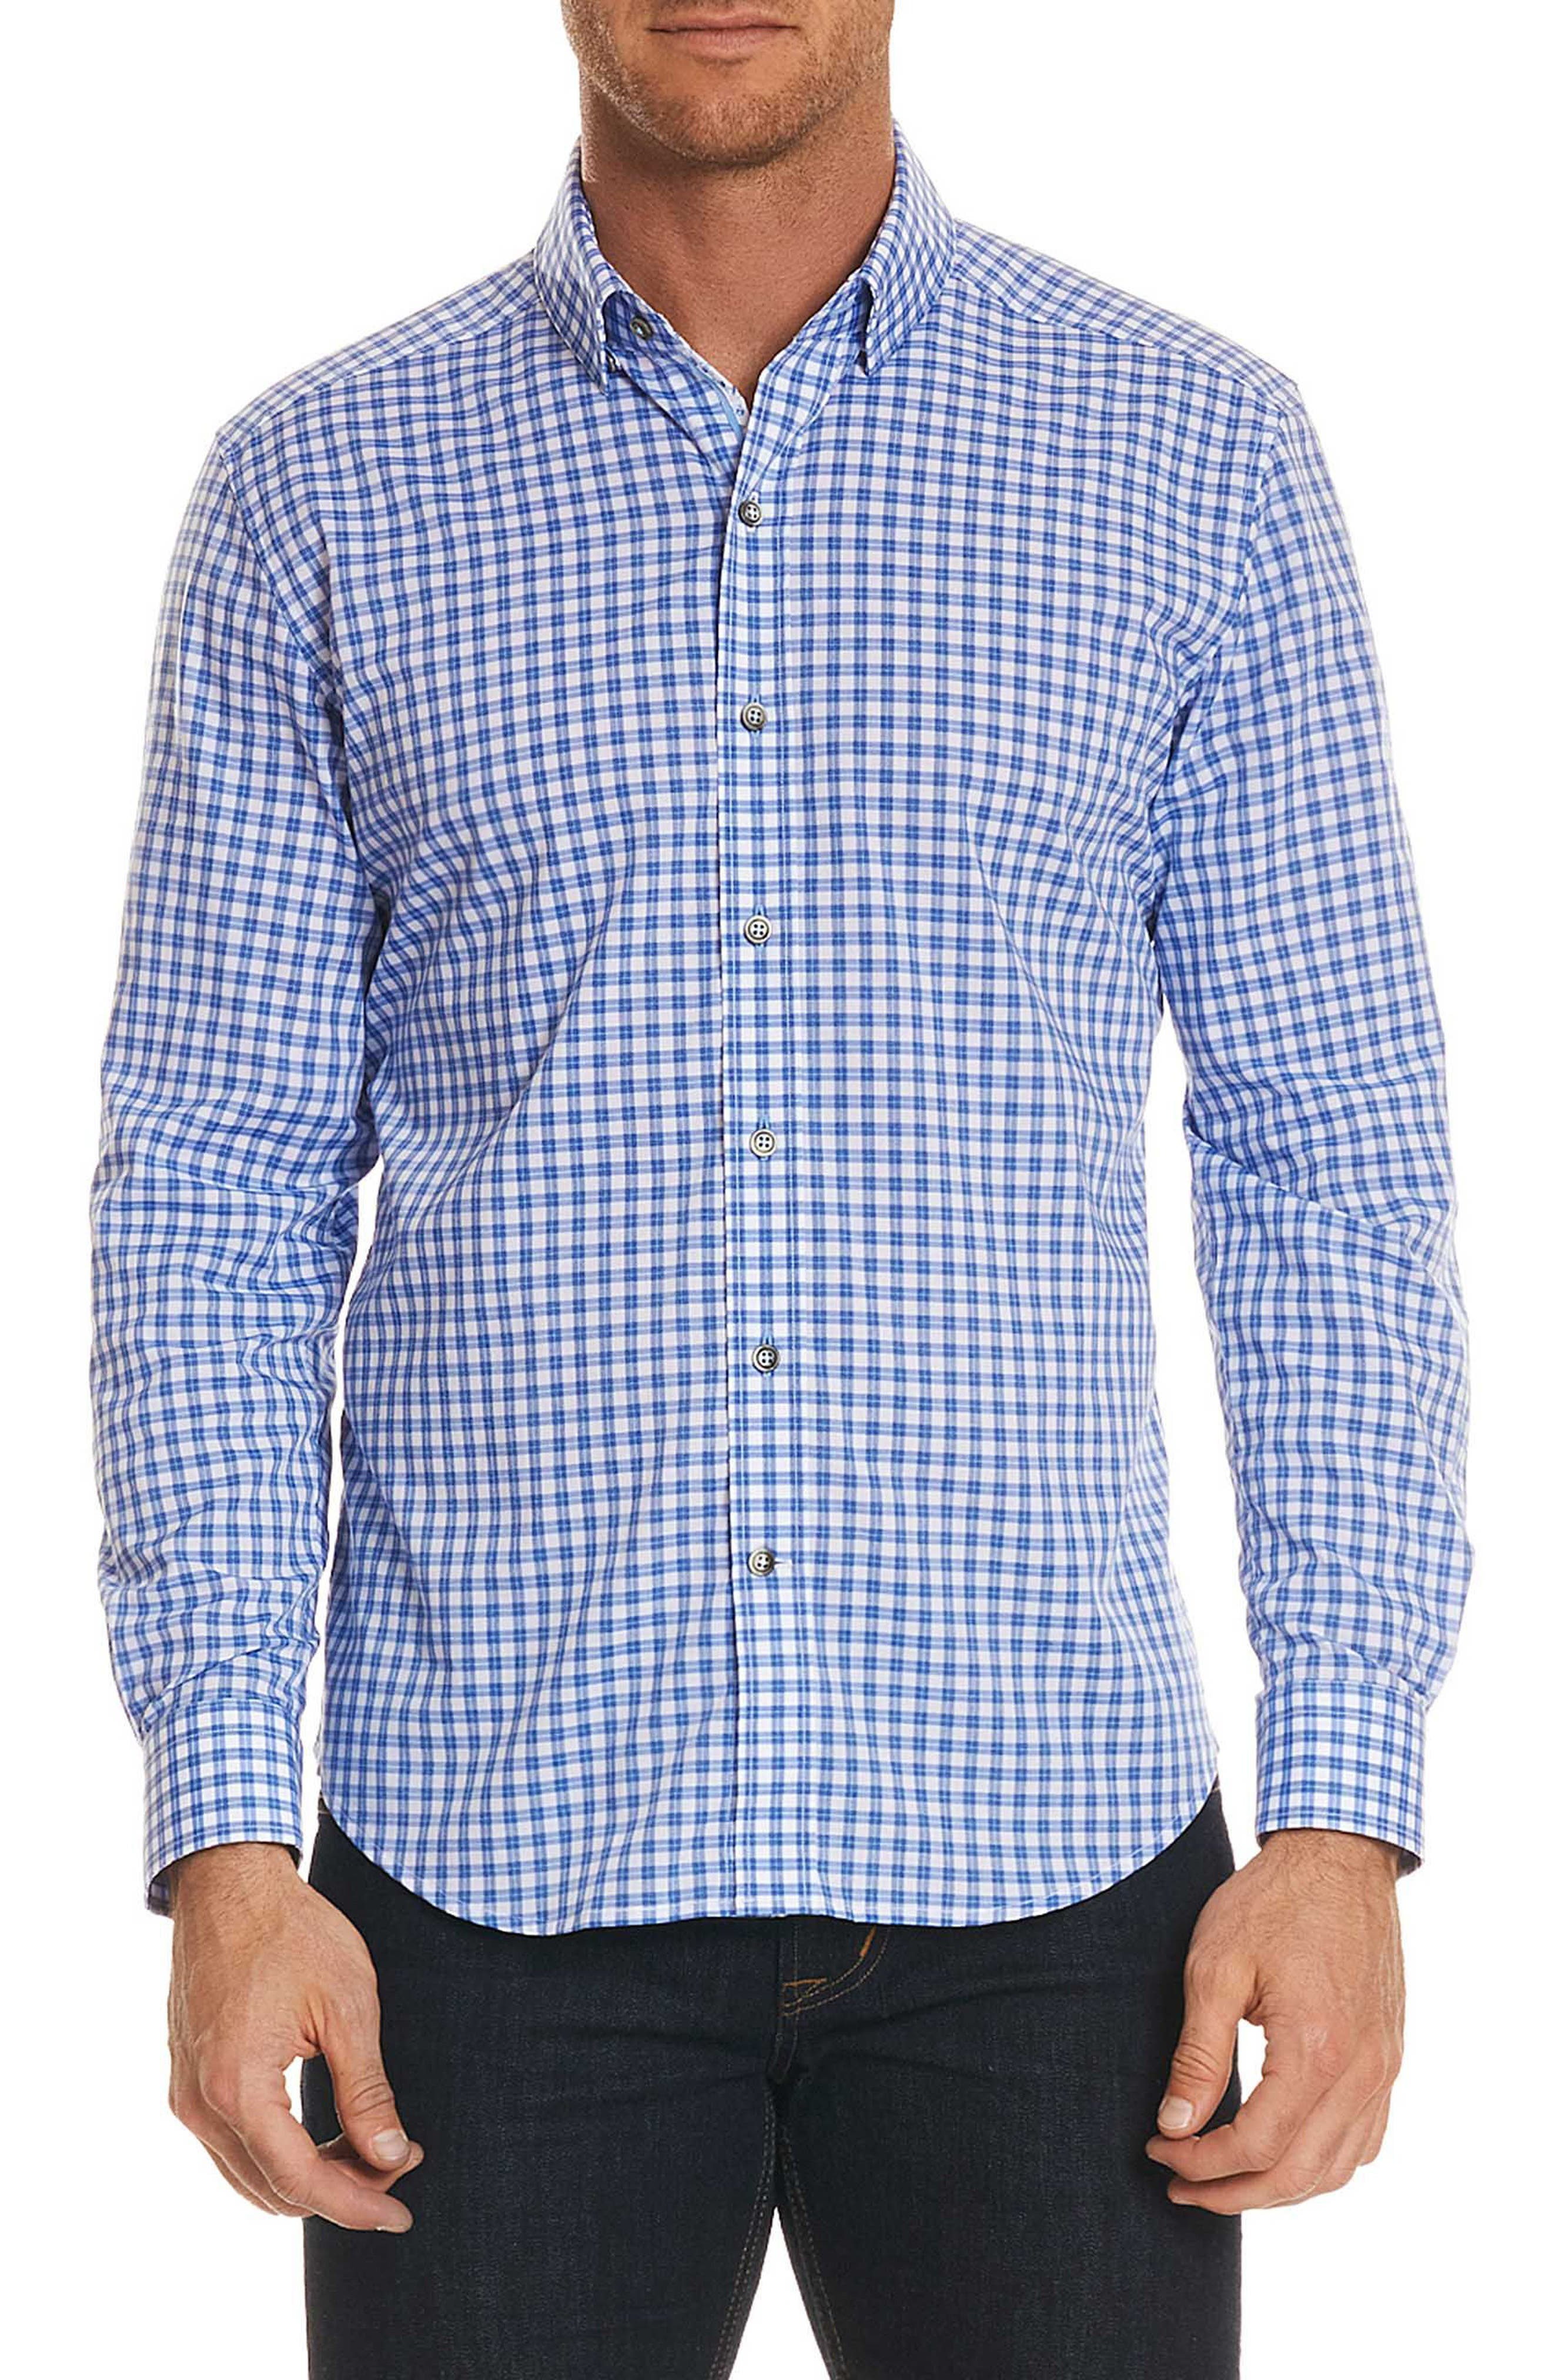 Rye Tailored Fit Check Sport Shirt,                         Main,                         color, 400